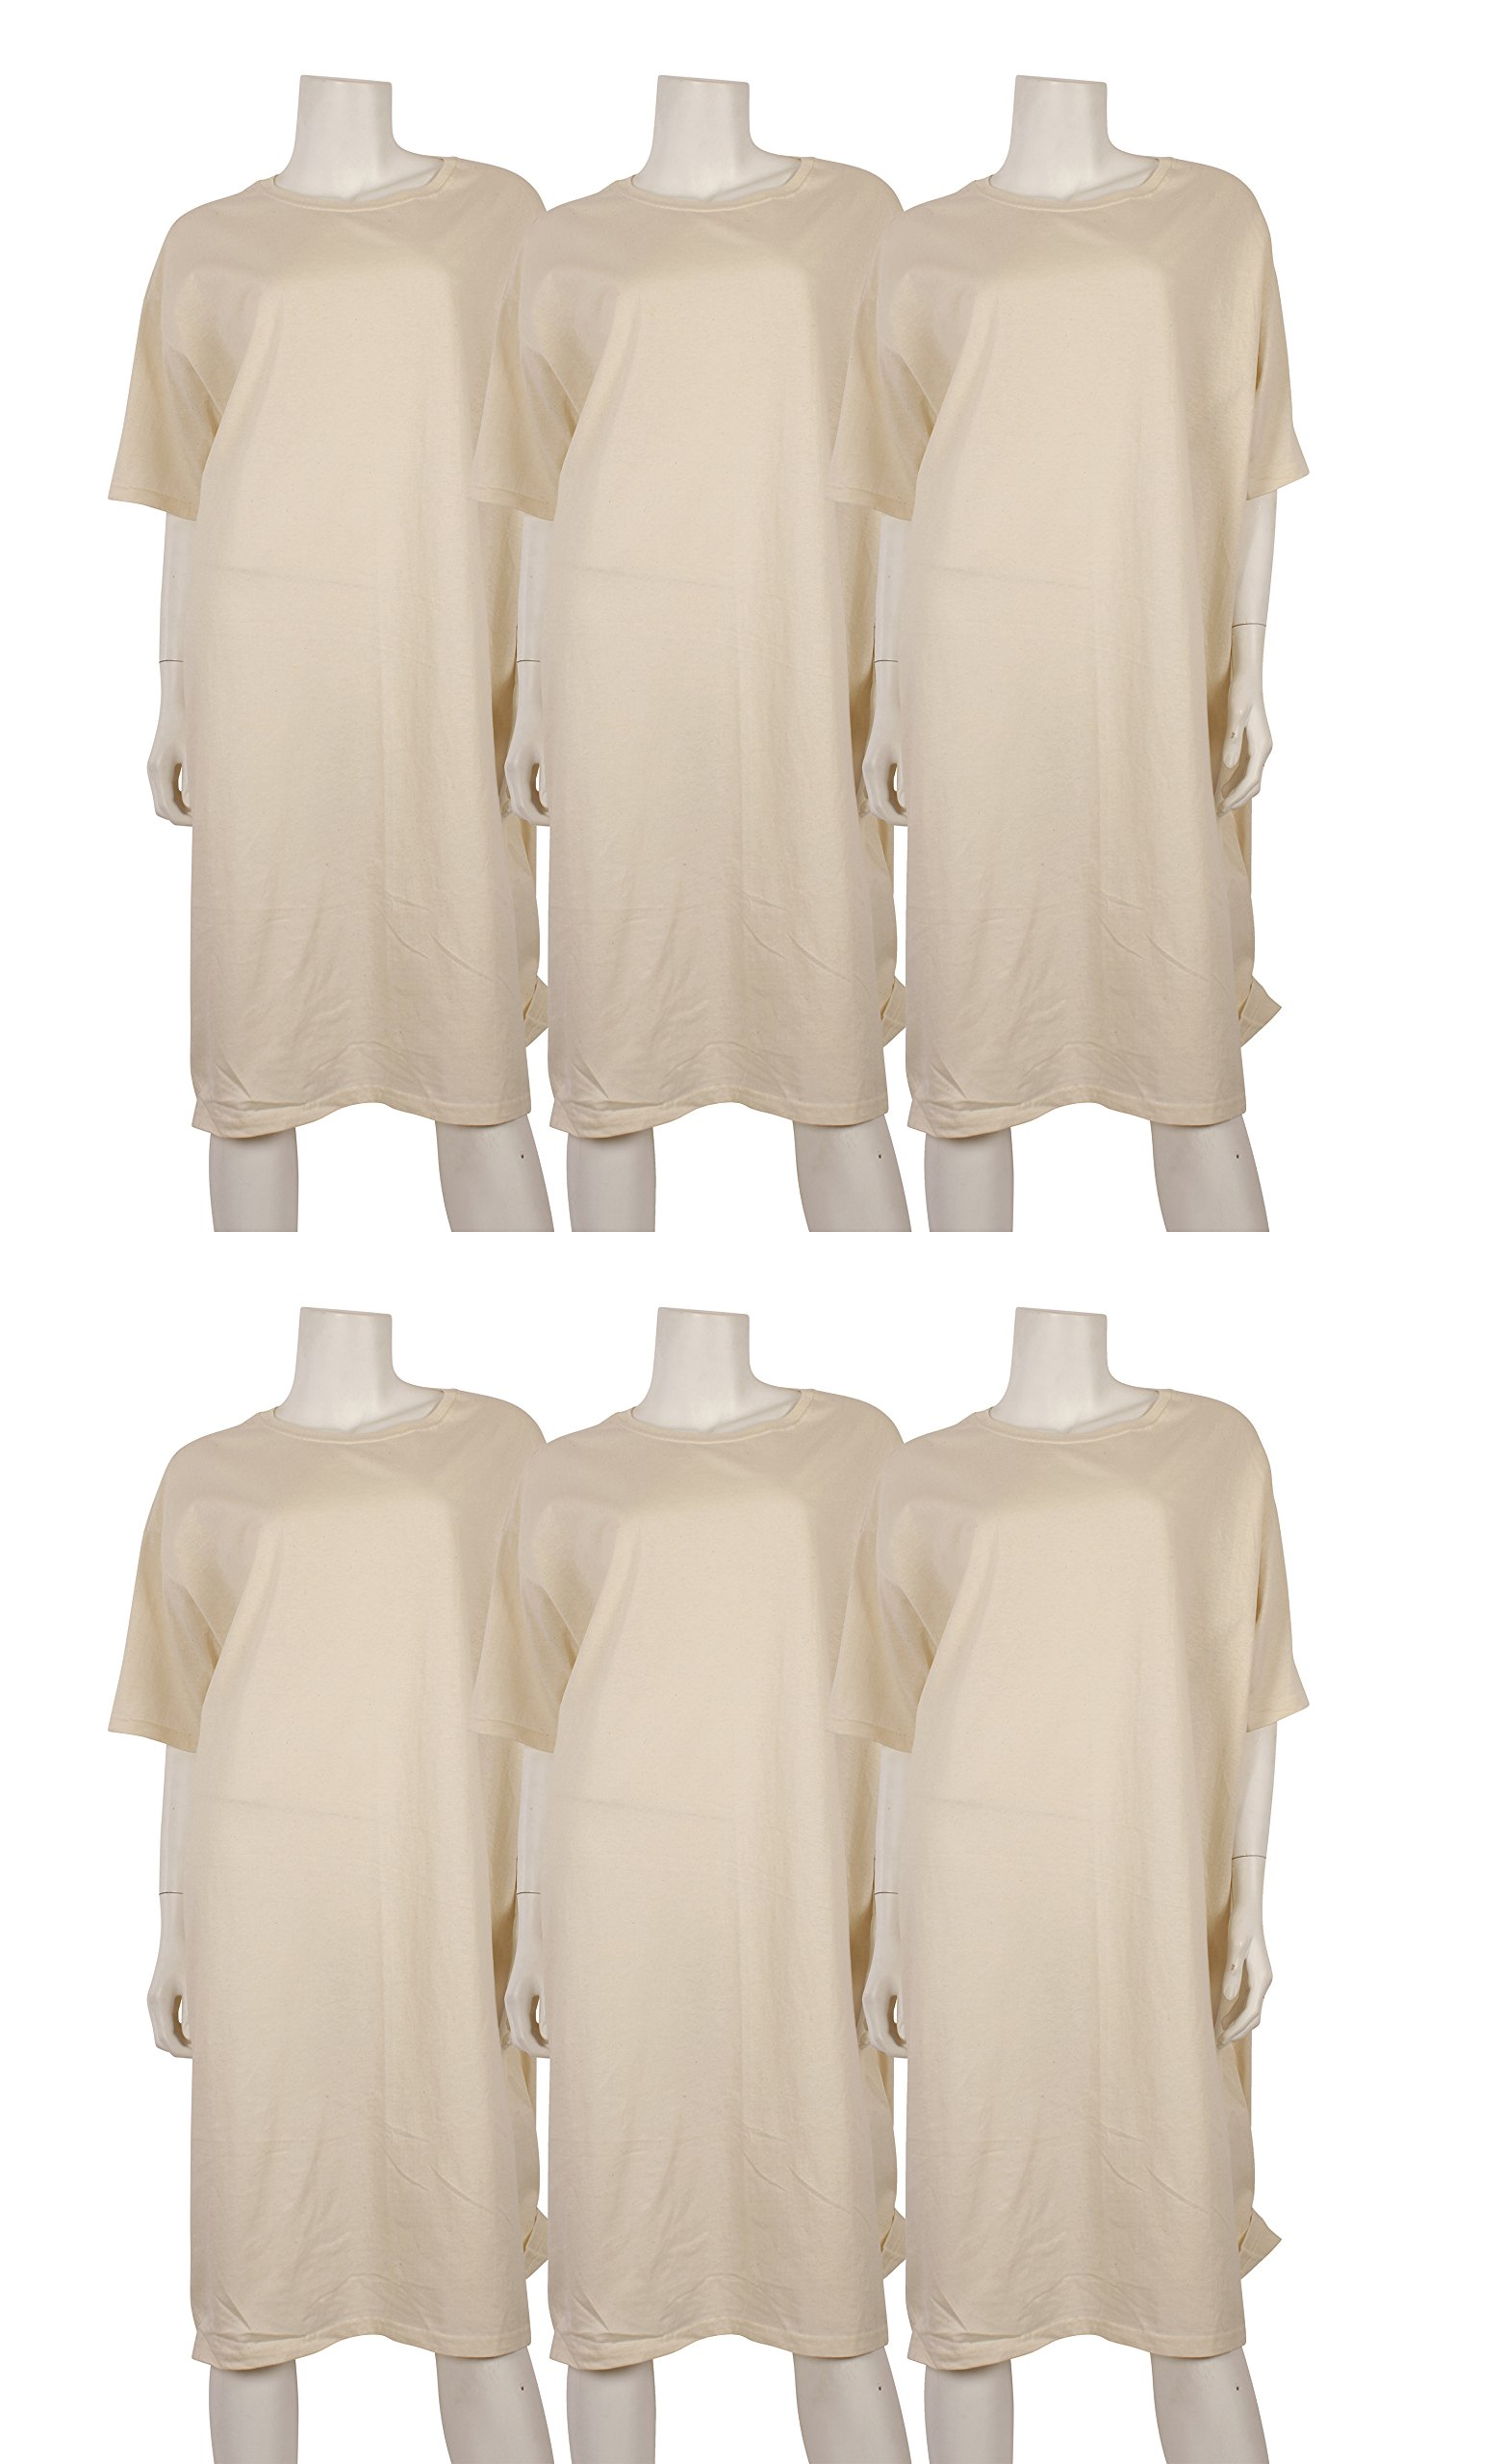 6 Pack of Women's Hanes Extra Long 100% Cotton Beige Nightshirt